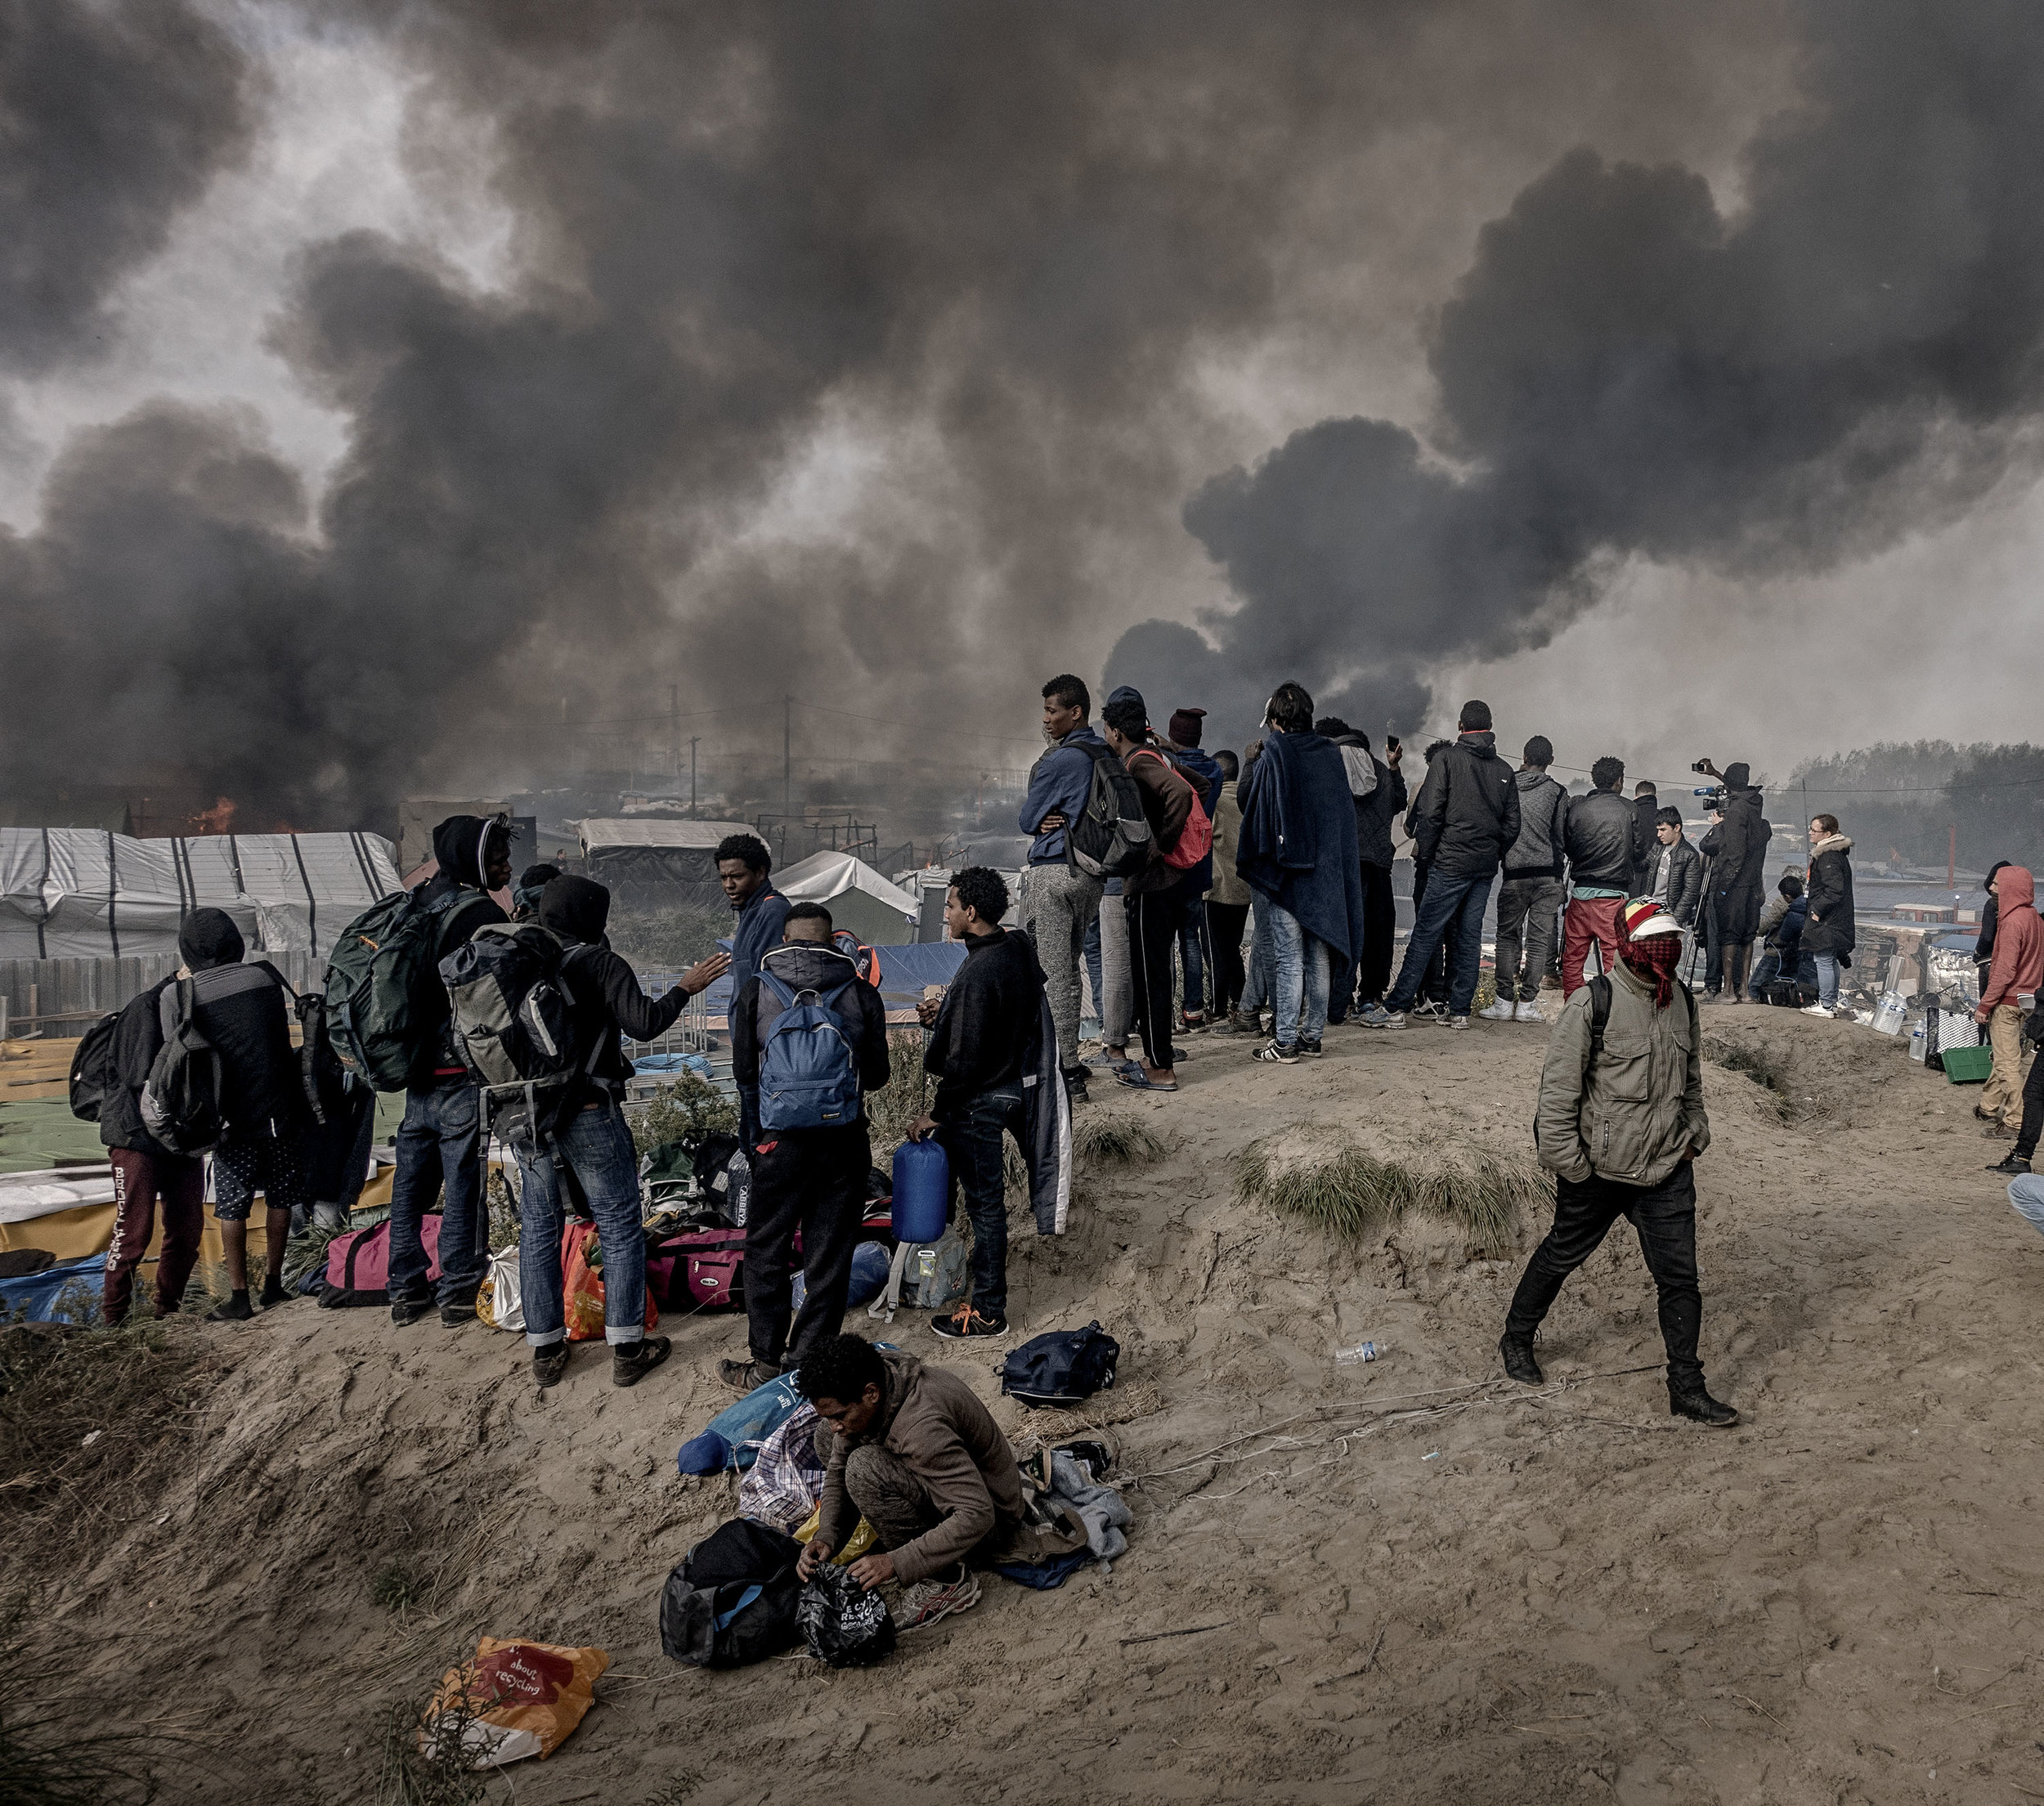 26th October 2016, The Jungle of Calais in France is in huge fire. Migrants watch from the top of the hill.